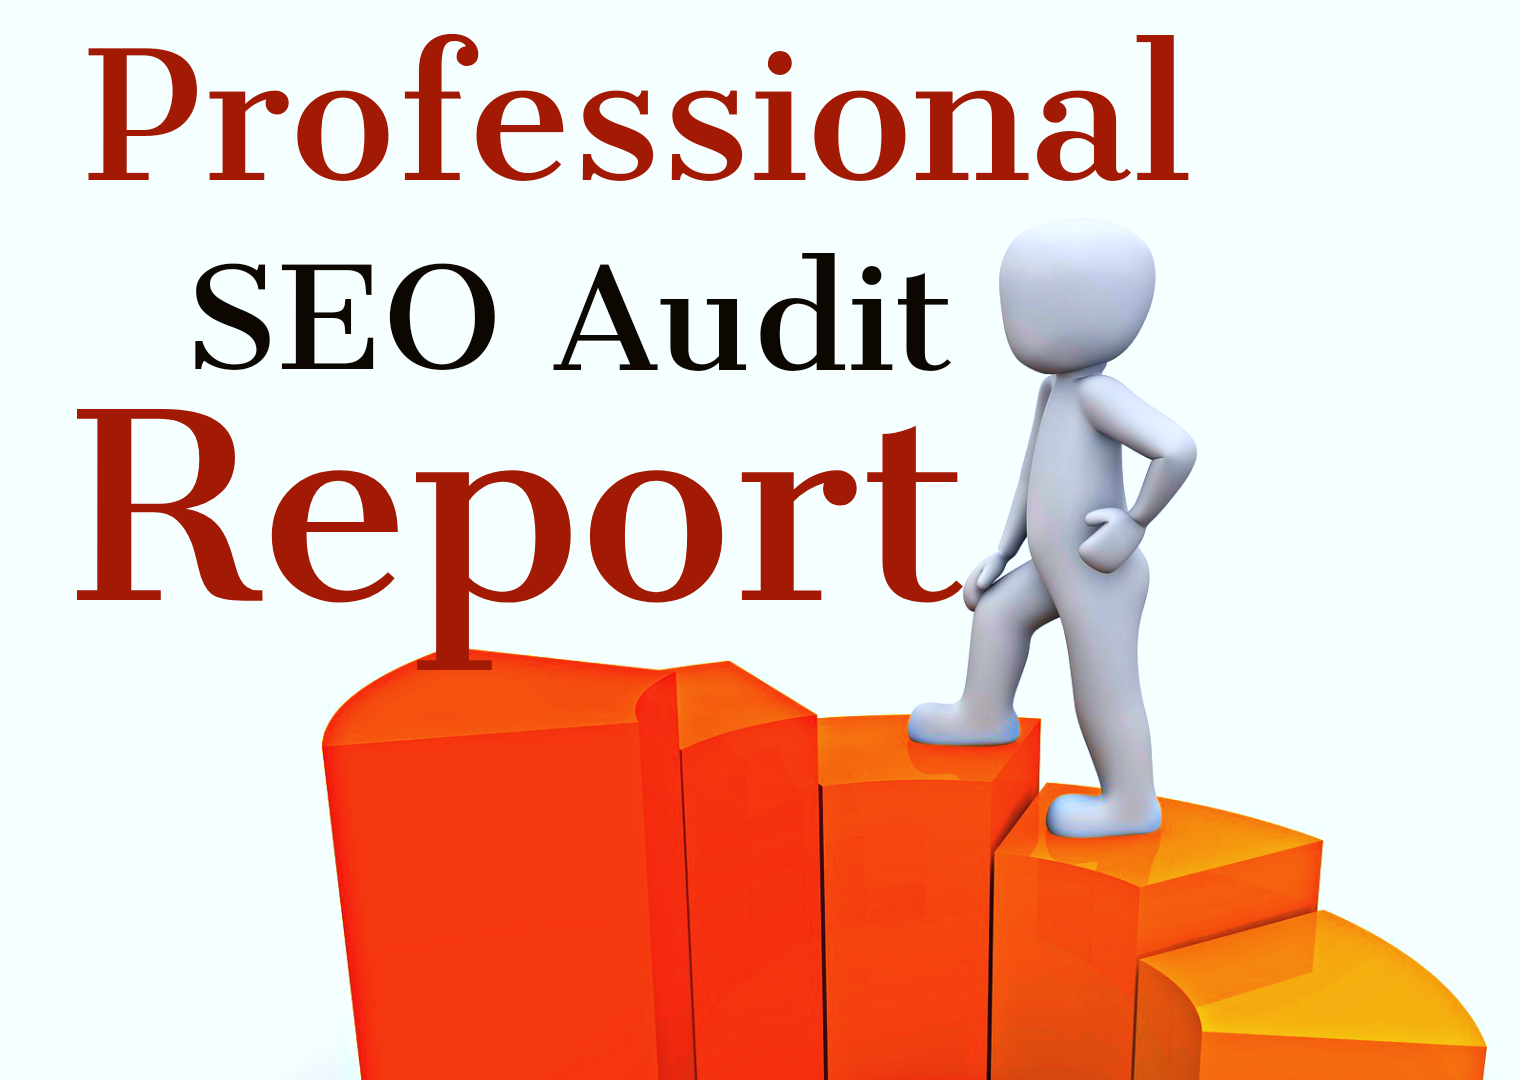 Get professional SEO Audit Report